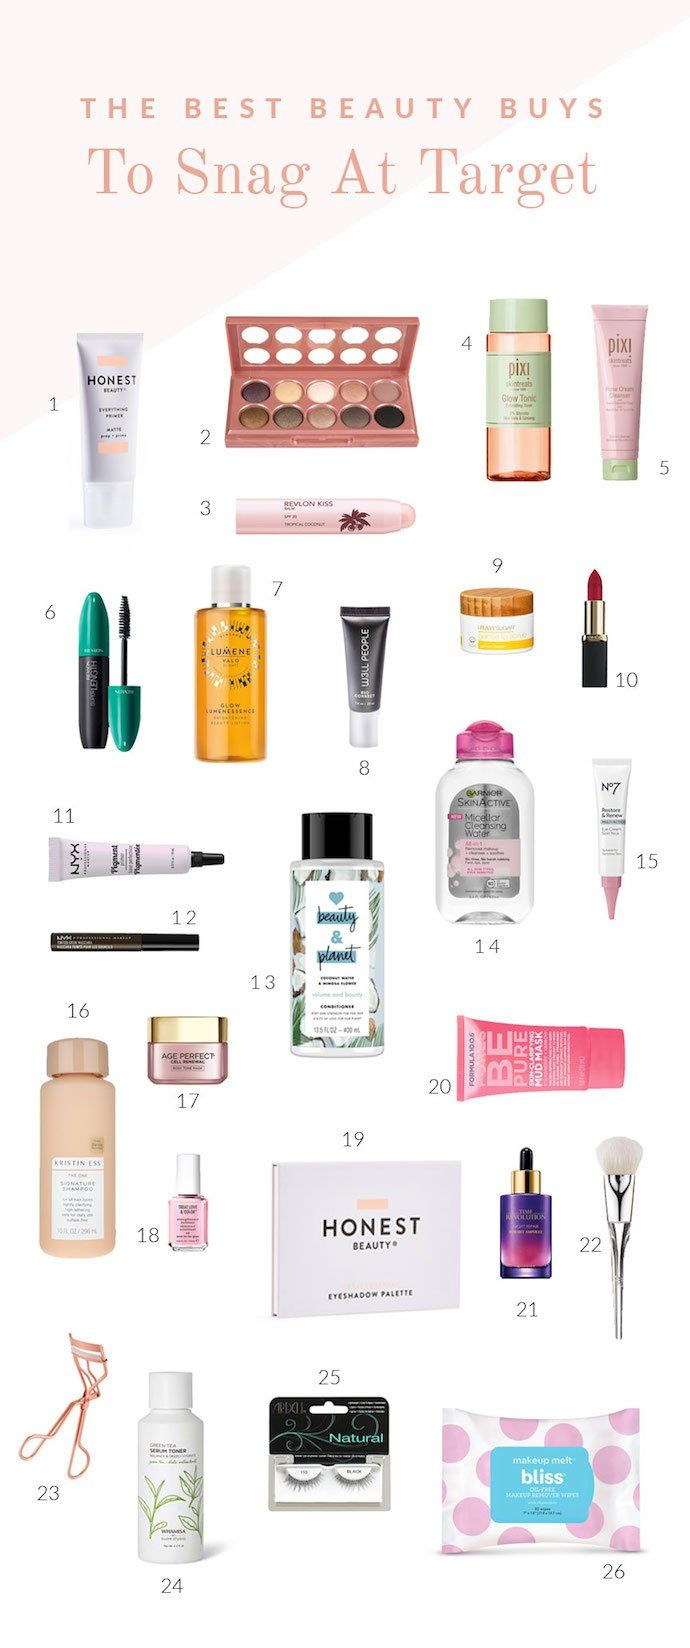 The Best Beauty Buys To Snag At Target Beauty Buys Target Makeup Target Beauty